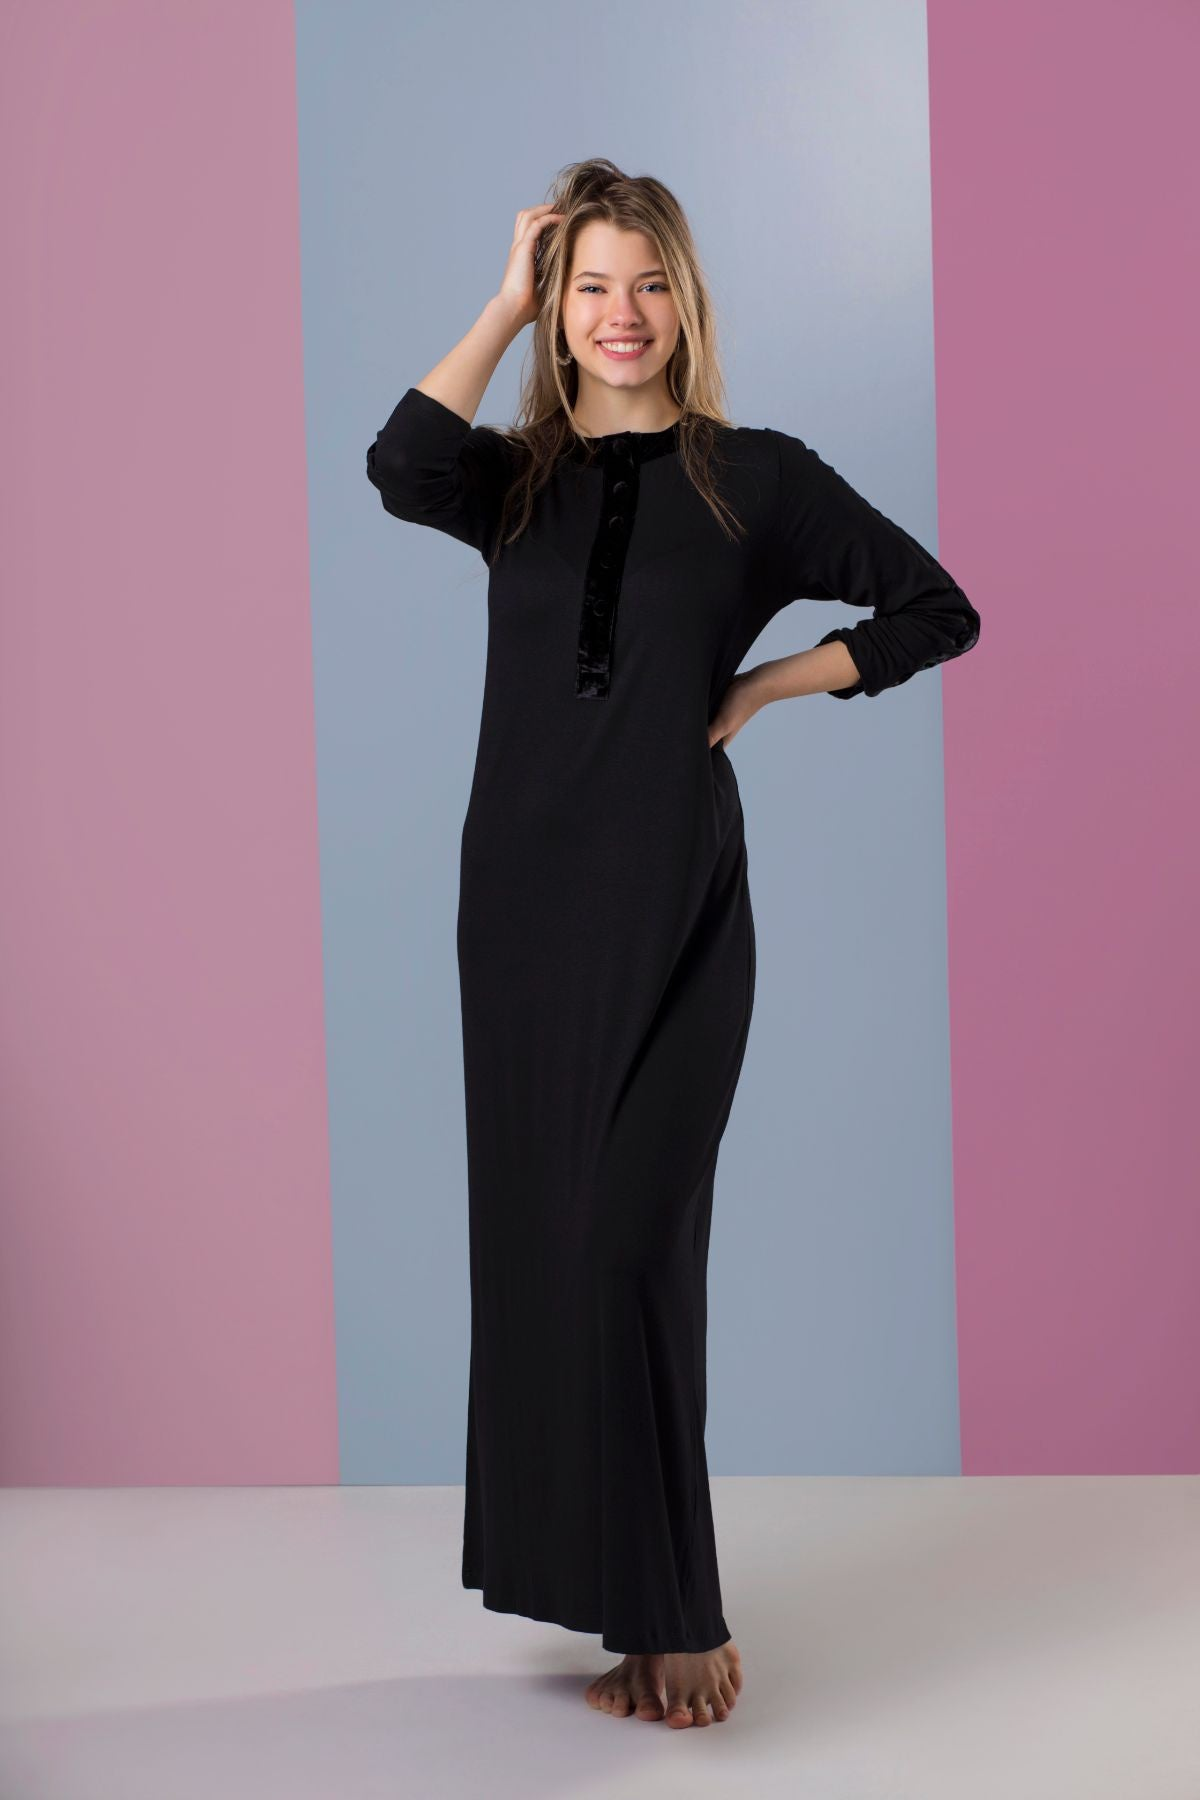 Ellwi Black Cotton Nightgown with Crushed Velvet Trim